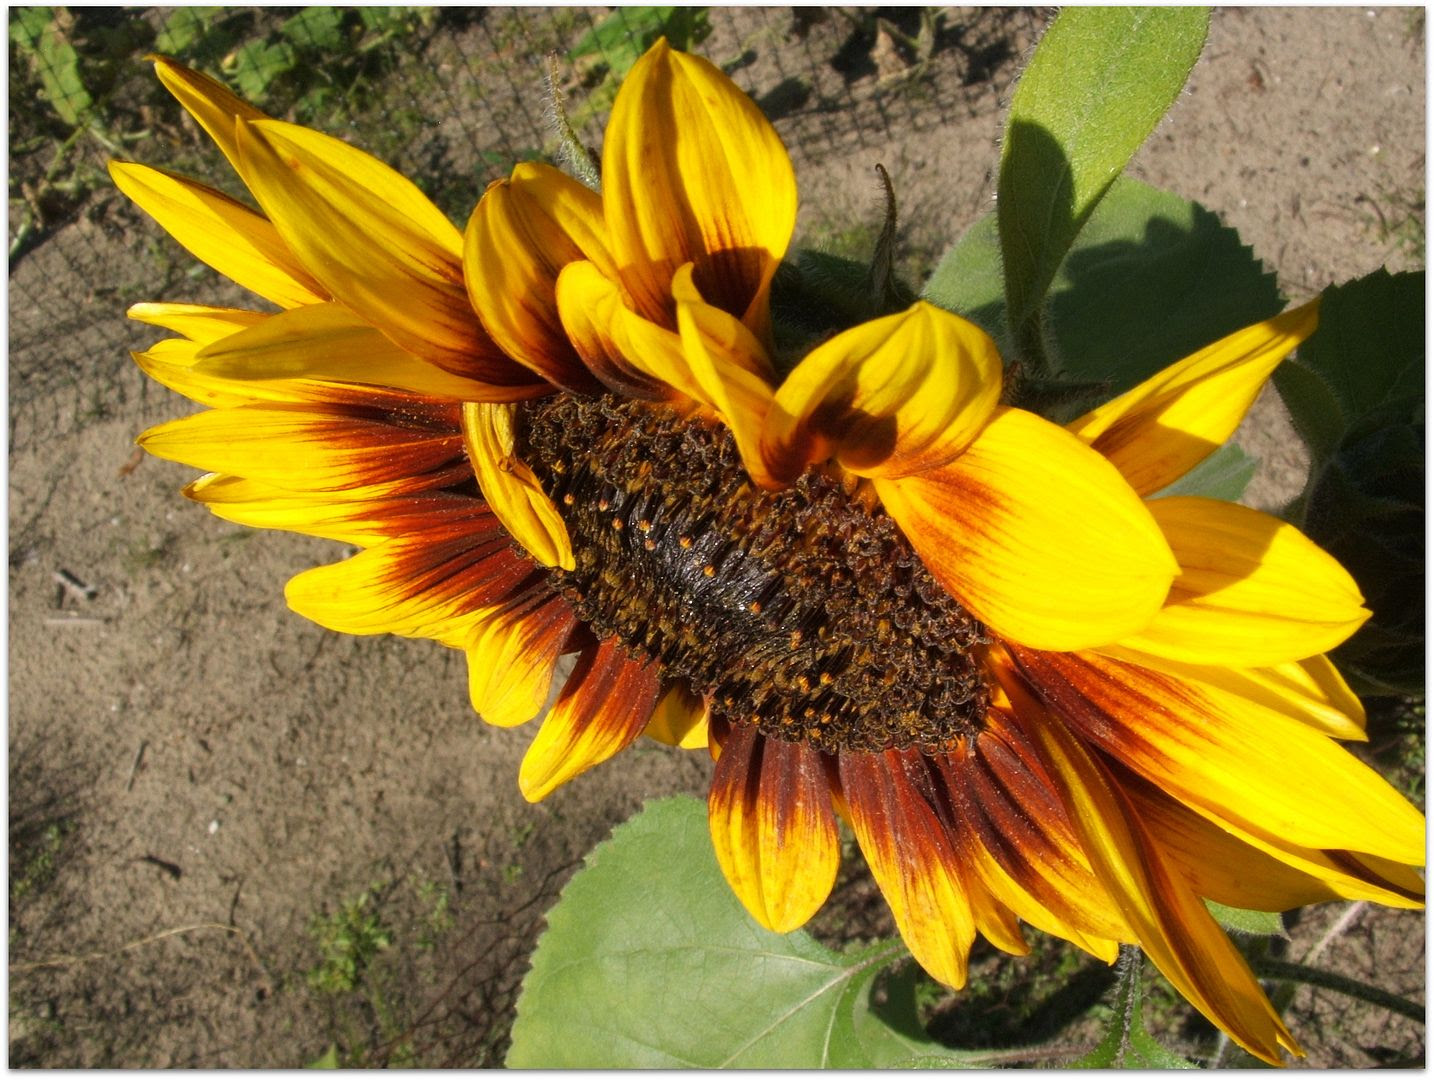 by Angie Ouellette-Tower for http://www.godsgrowinggarden.com/ photo DSCF9033_zpsxapzitqx.jpg